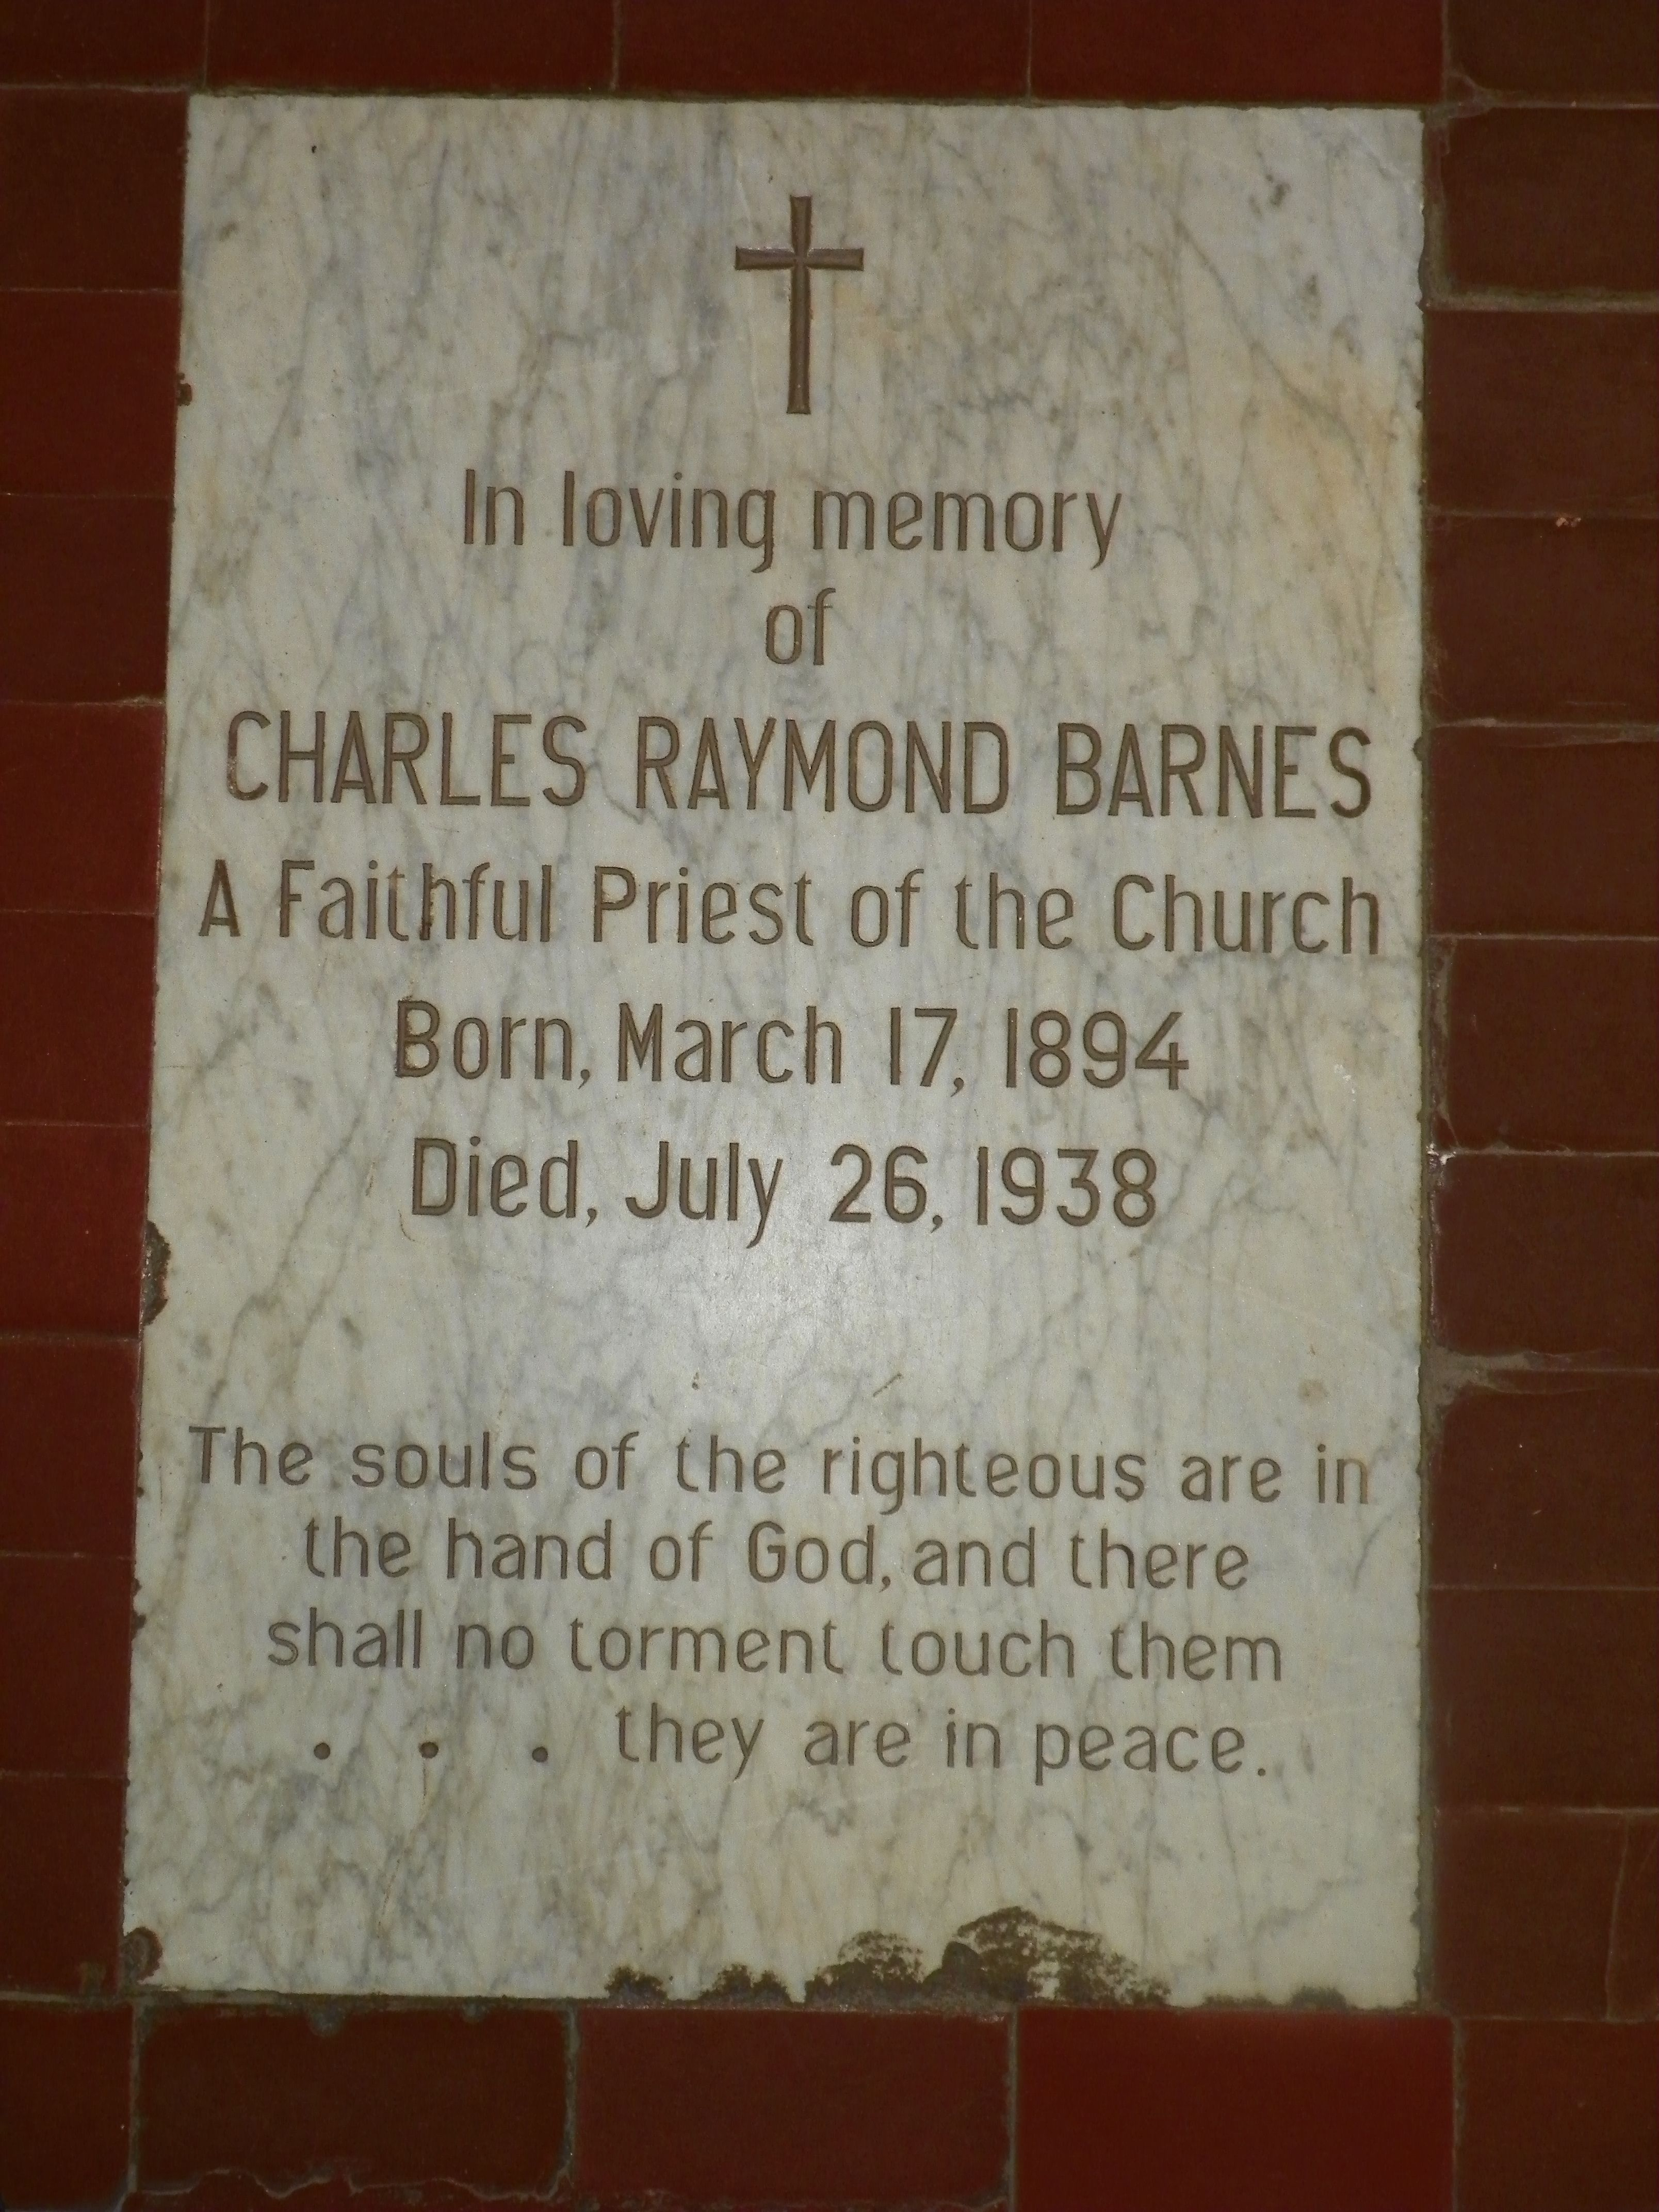 Iglesia Episcopal de la Epifania, Santo Domingo, Dominican Republic~ The tablet that marks the burial place of Father Barnes. His last act was the sacrament of the Eucharist. Now, every time one partakes they do so over Father Barnes, an Episcopal Martyr.